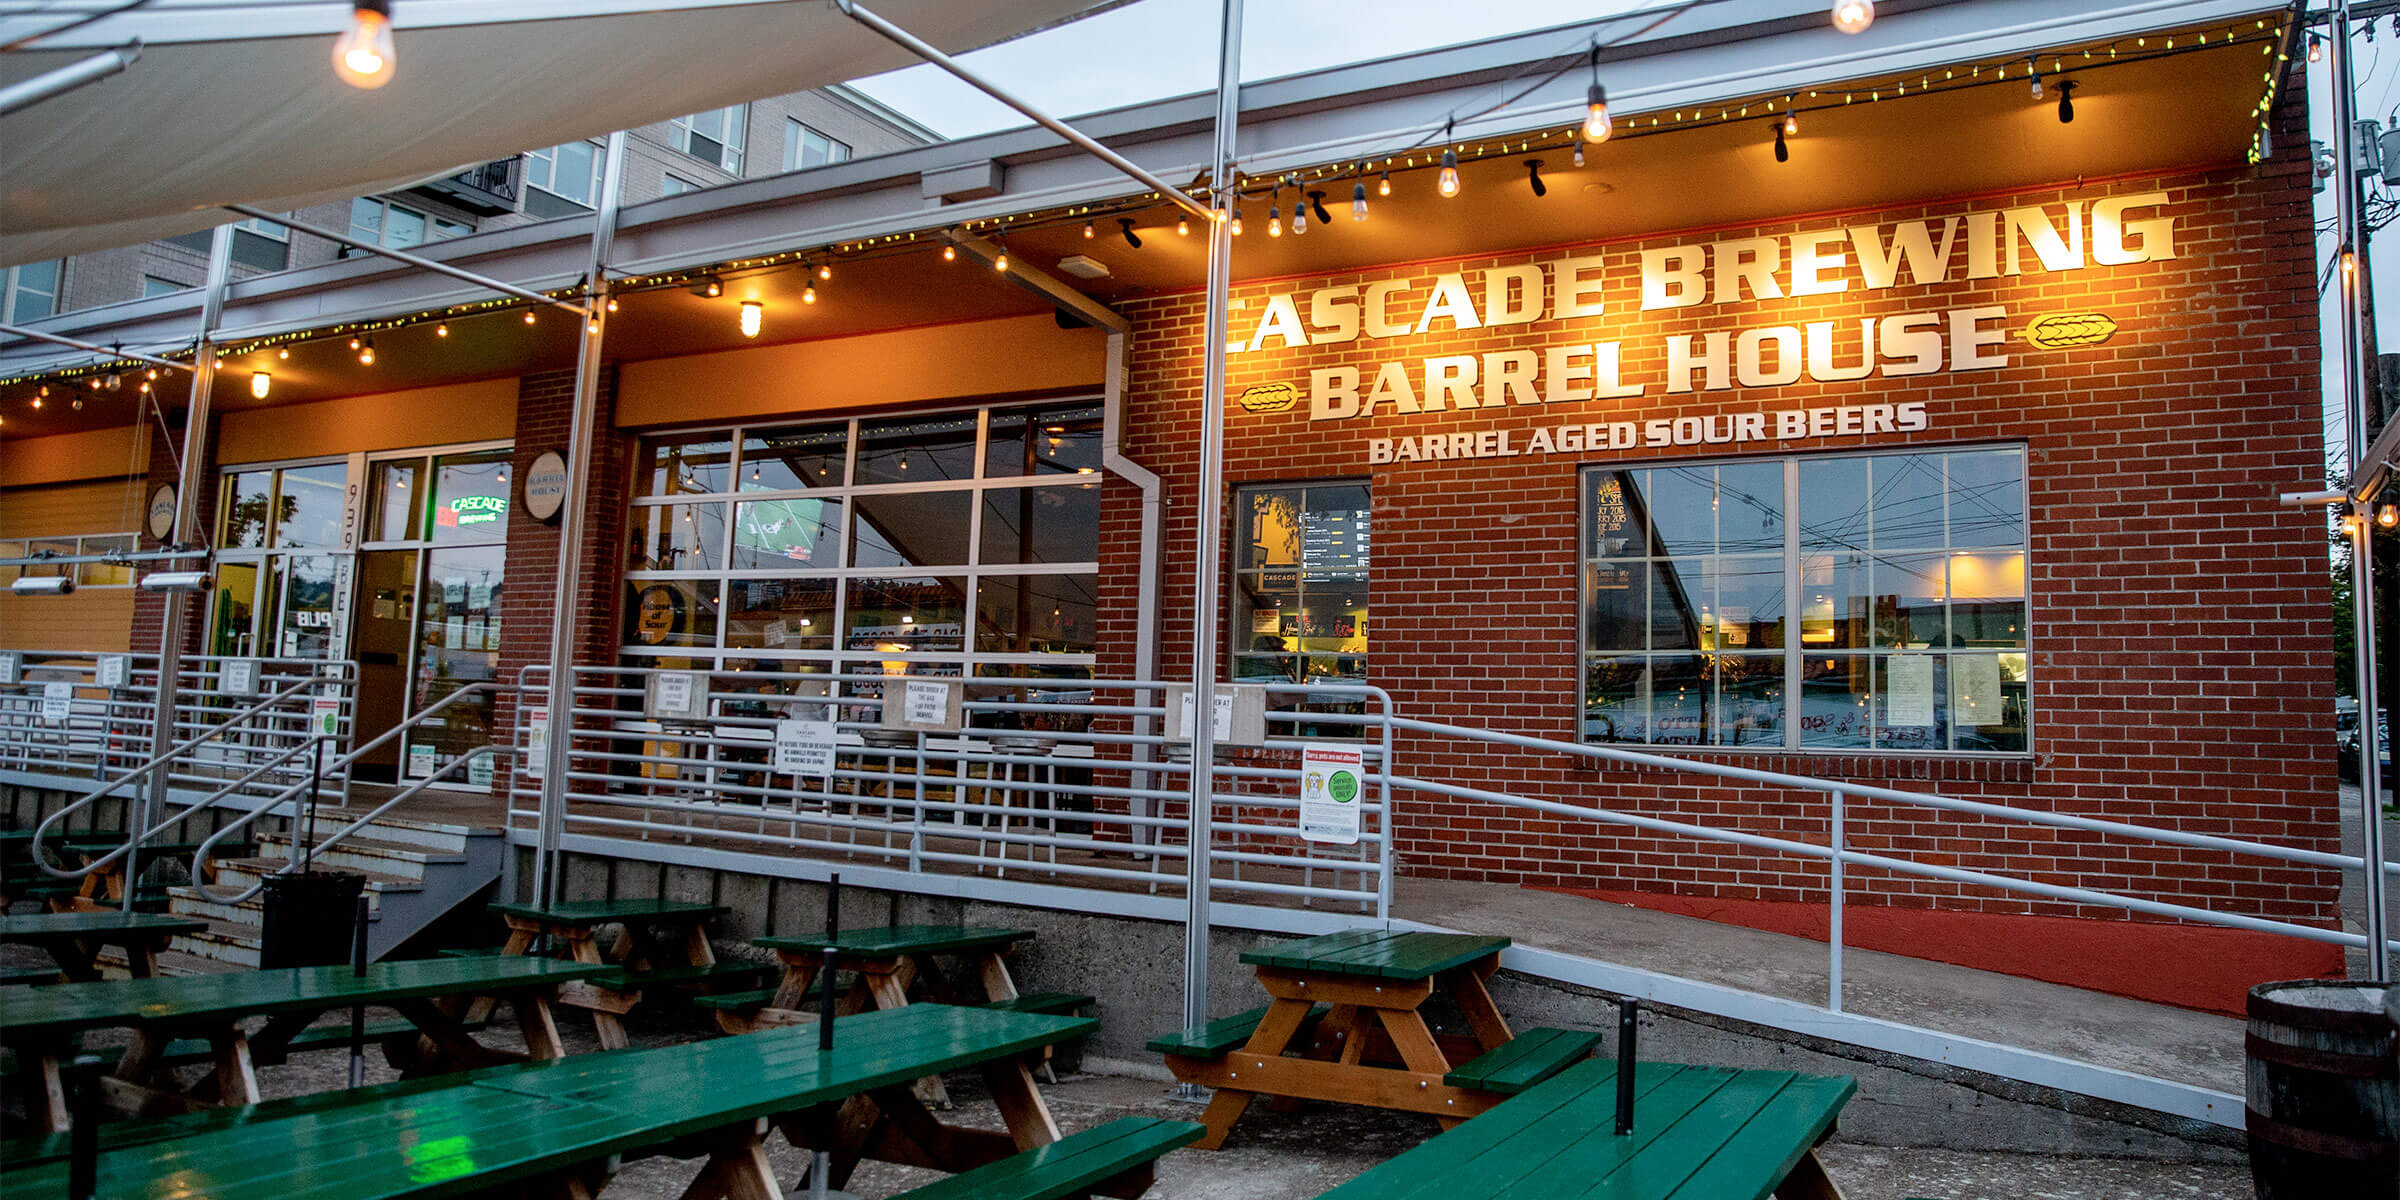 Outside on the patio at Cascade Brewing Barrel House in Portland, Oregon